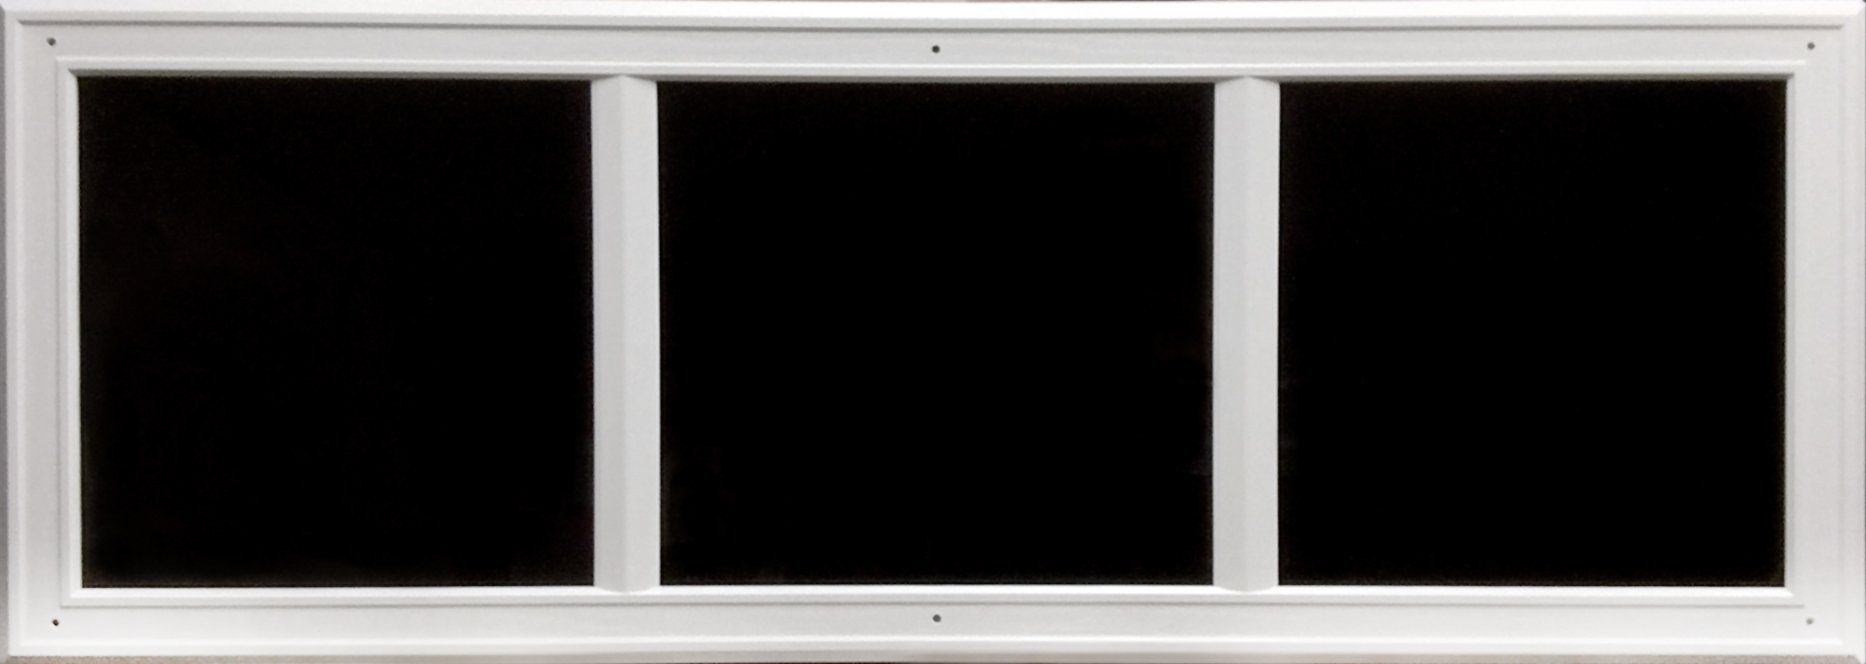 Coach House Accents AP240199 Heritage Decor Window, White by Coach (Image #1)